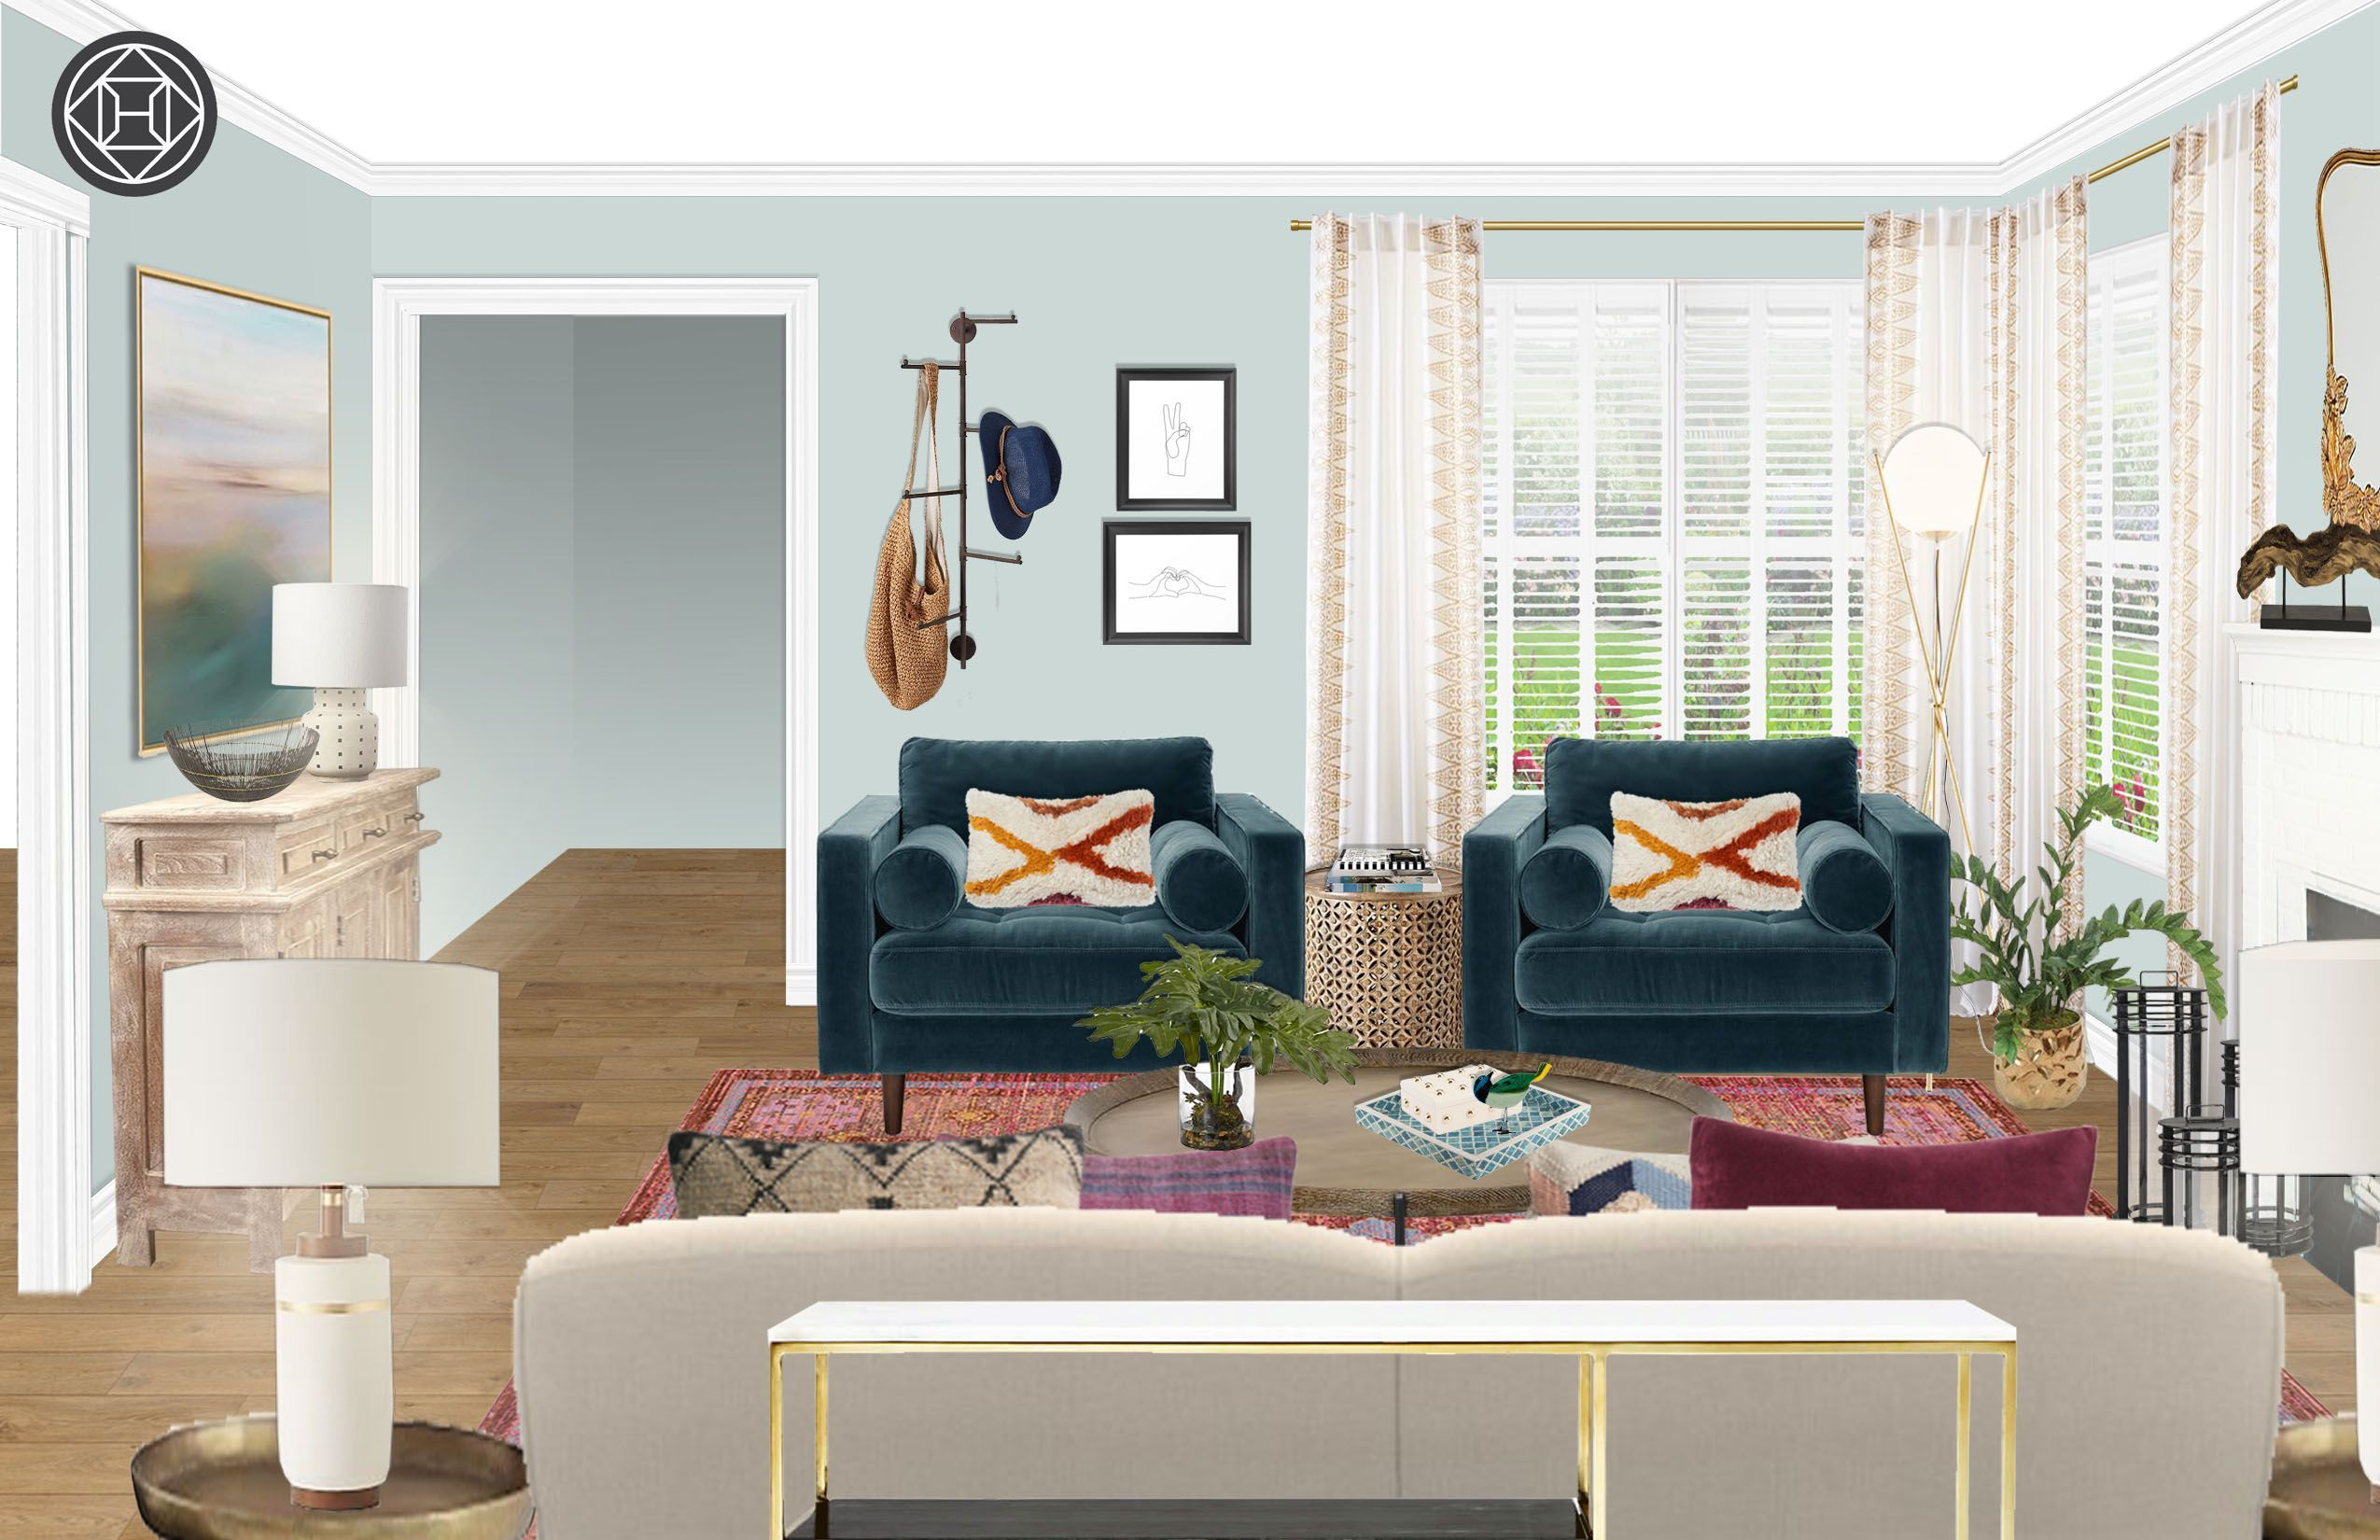 Global Eclectic Living Room Eclectic Bohemian Global Living Room Design By Havenly Interior Designer By Matthew With Images Global Living Room Eclectic Living Room Havenly Living Room